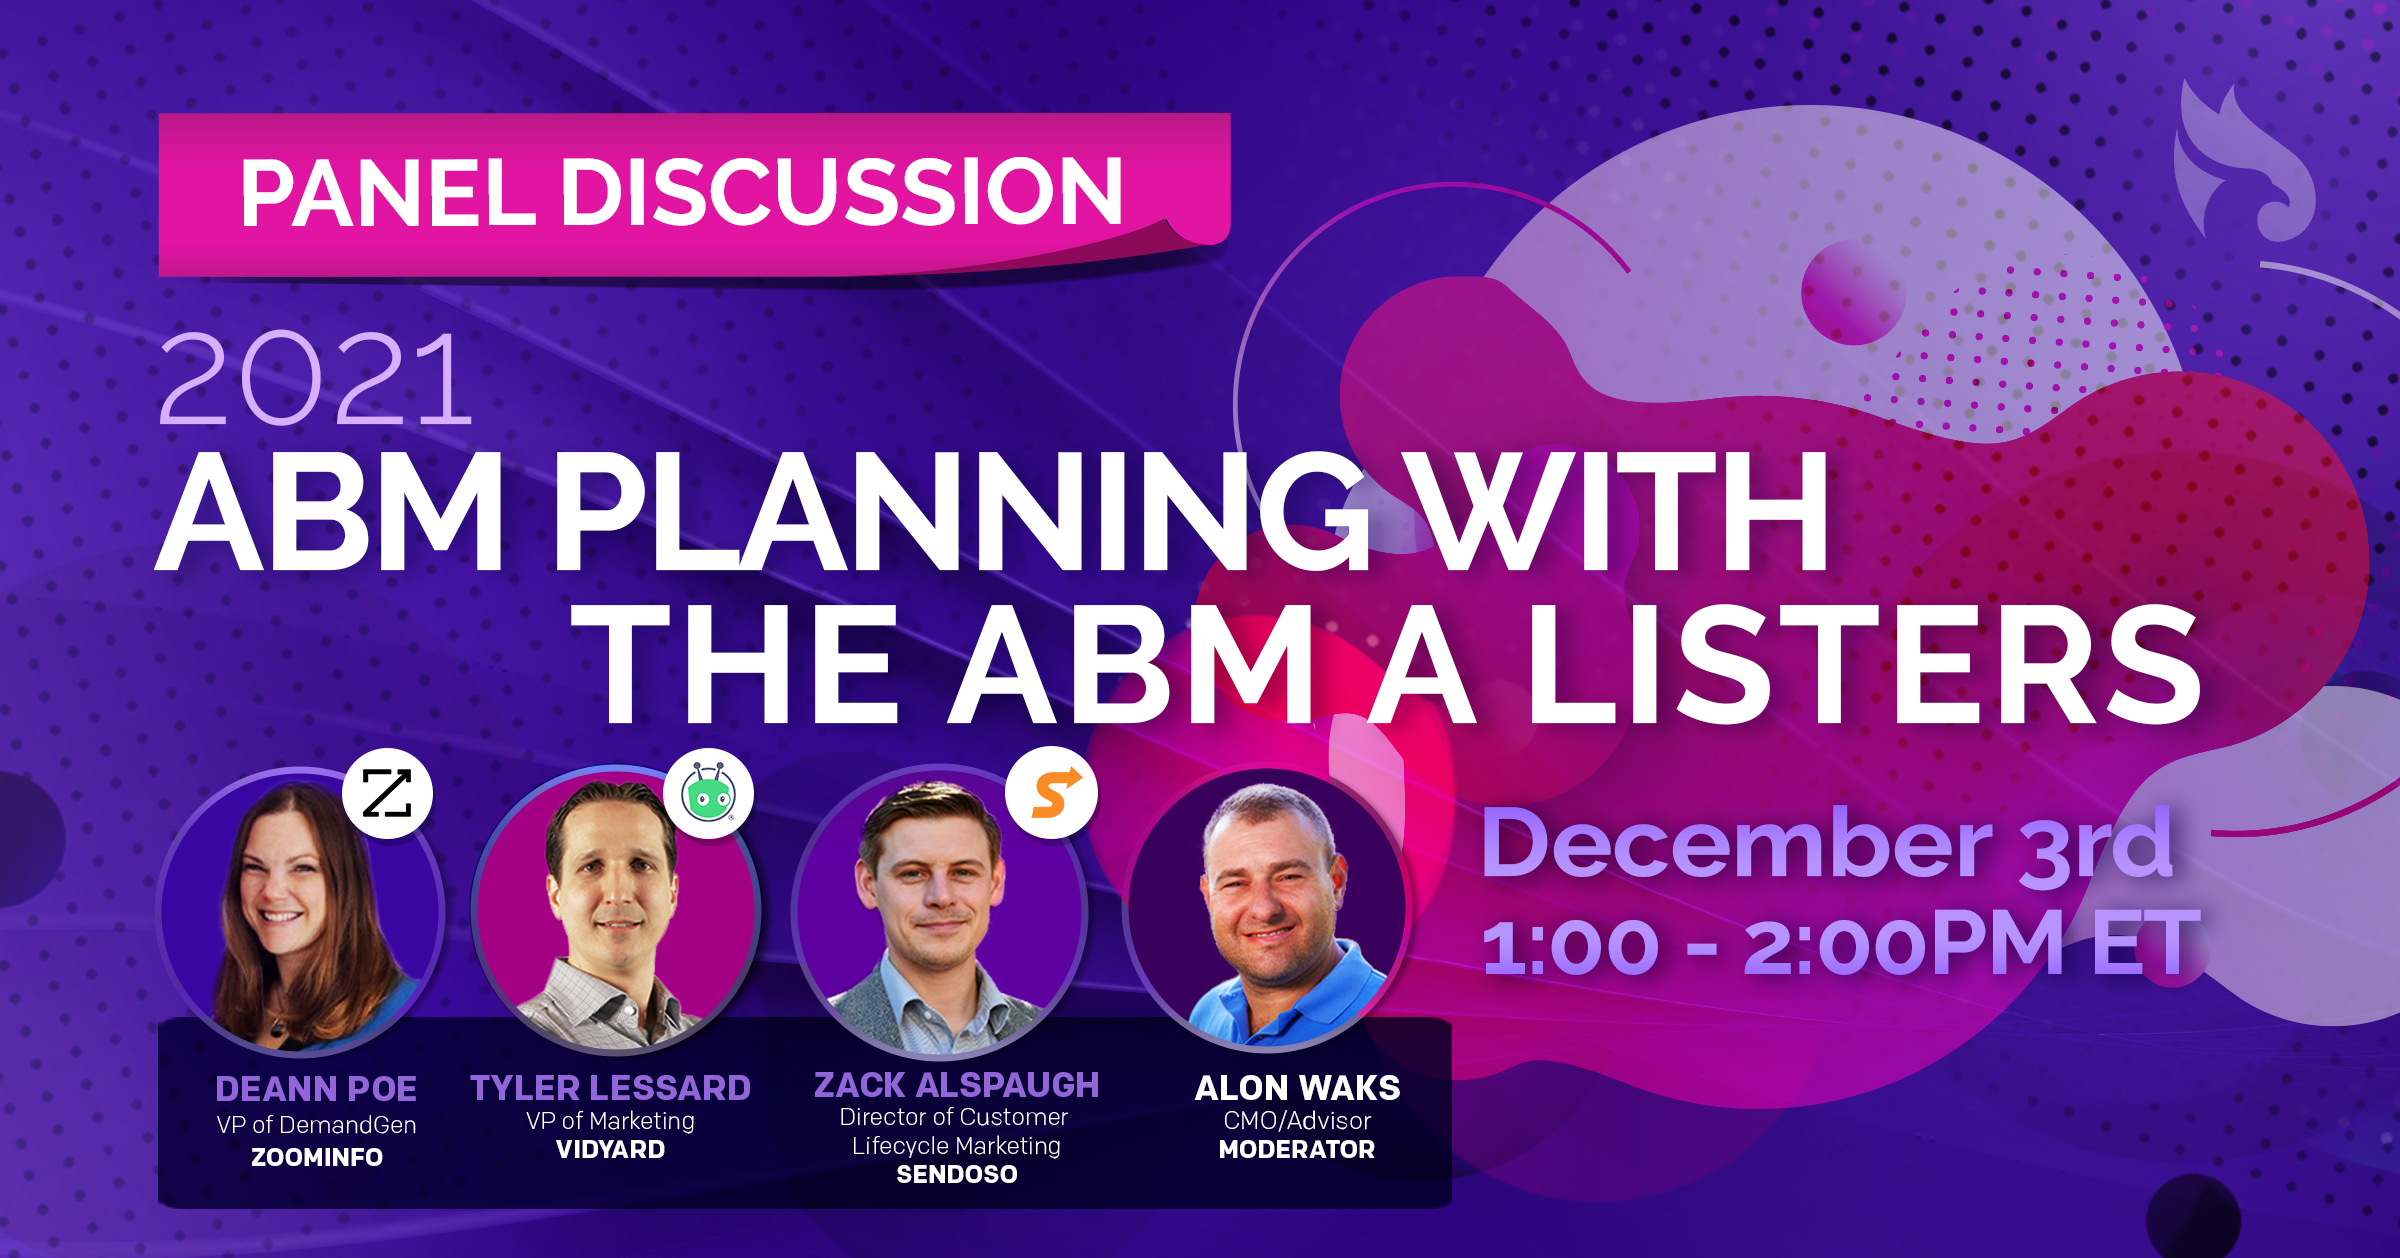 ABM Planning with the ABM A Listers